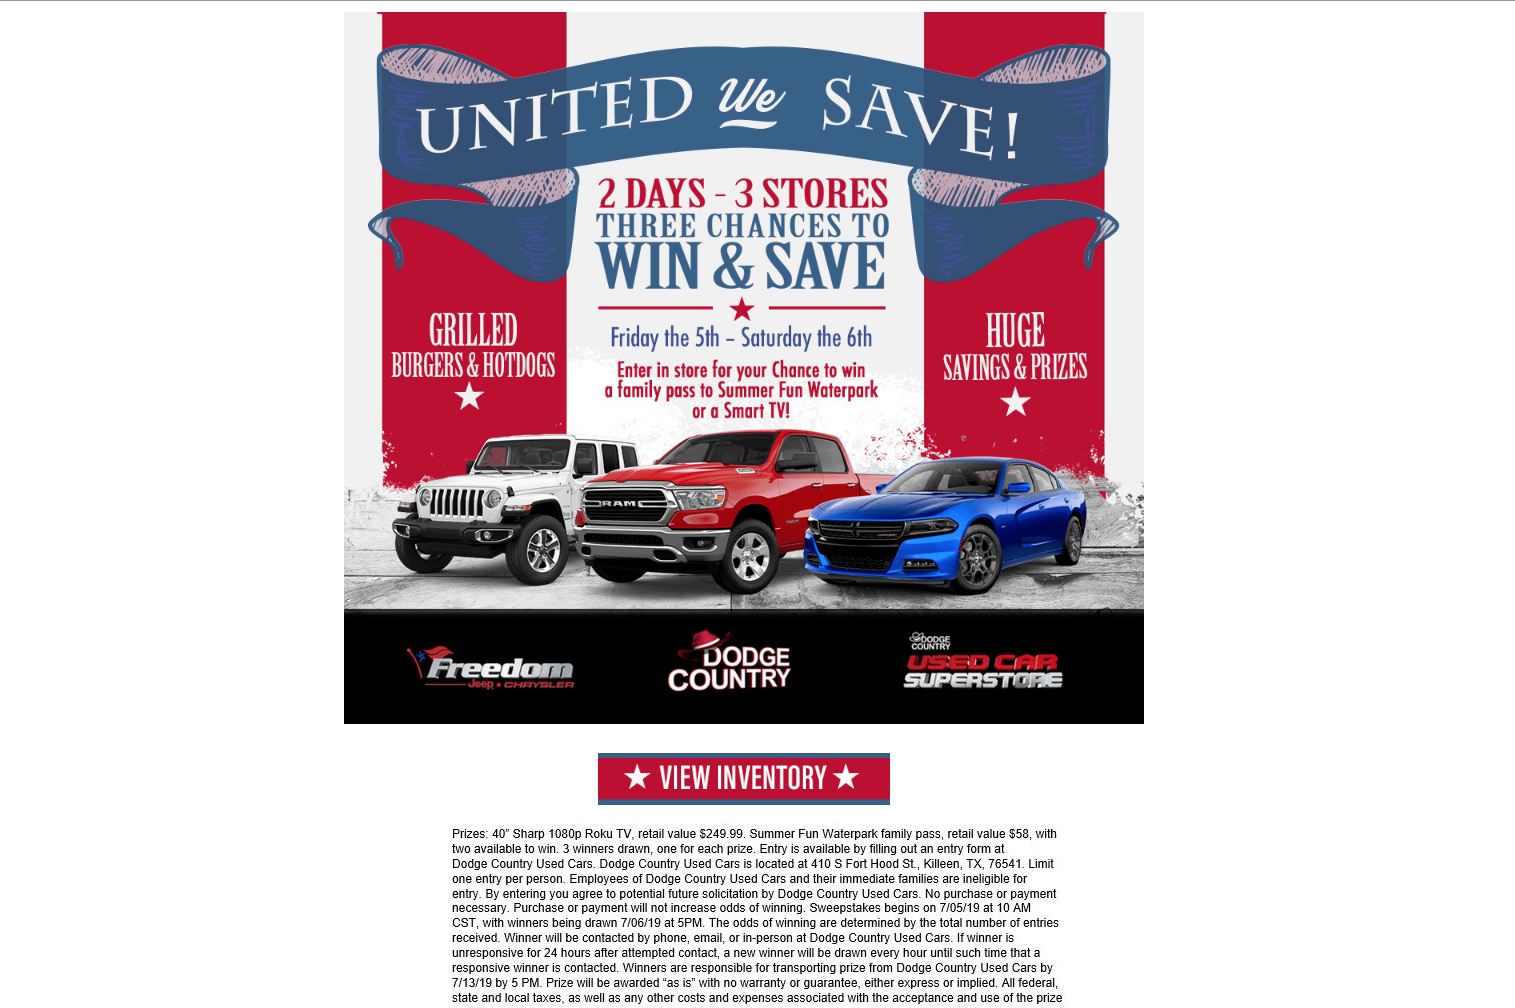 Dodge Country Used Cars Killeen Tx >> Dodge Country Used Cars Serving Killeen, TX, New, Used Cars